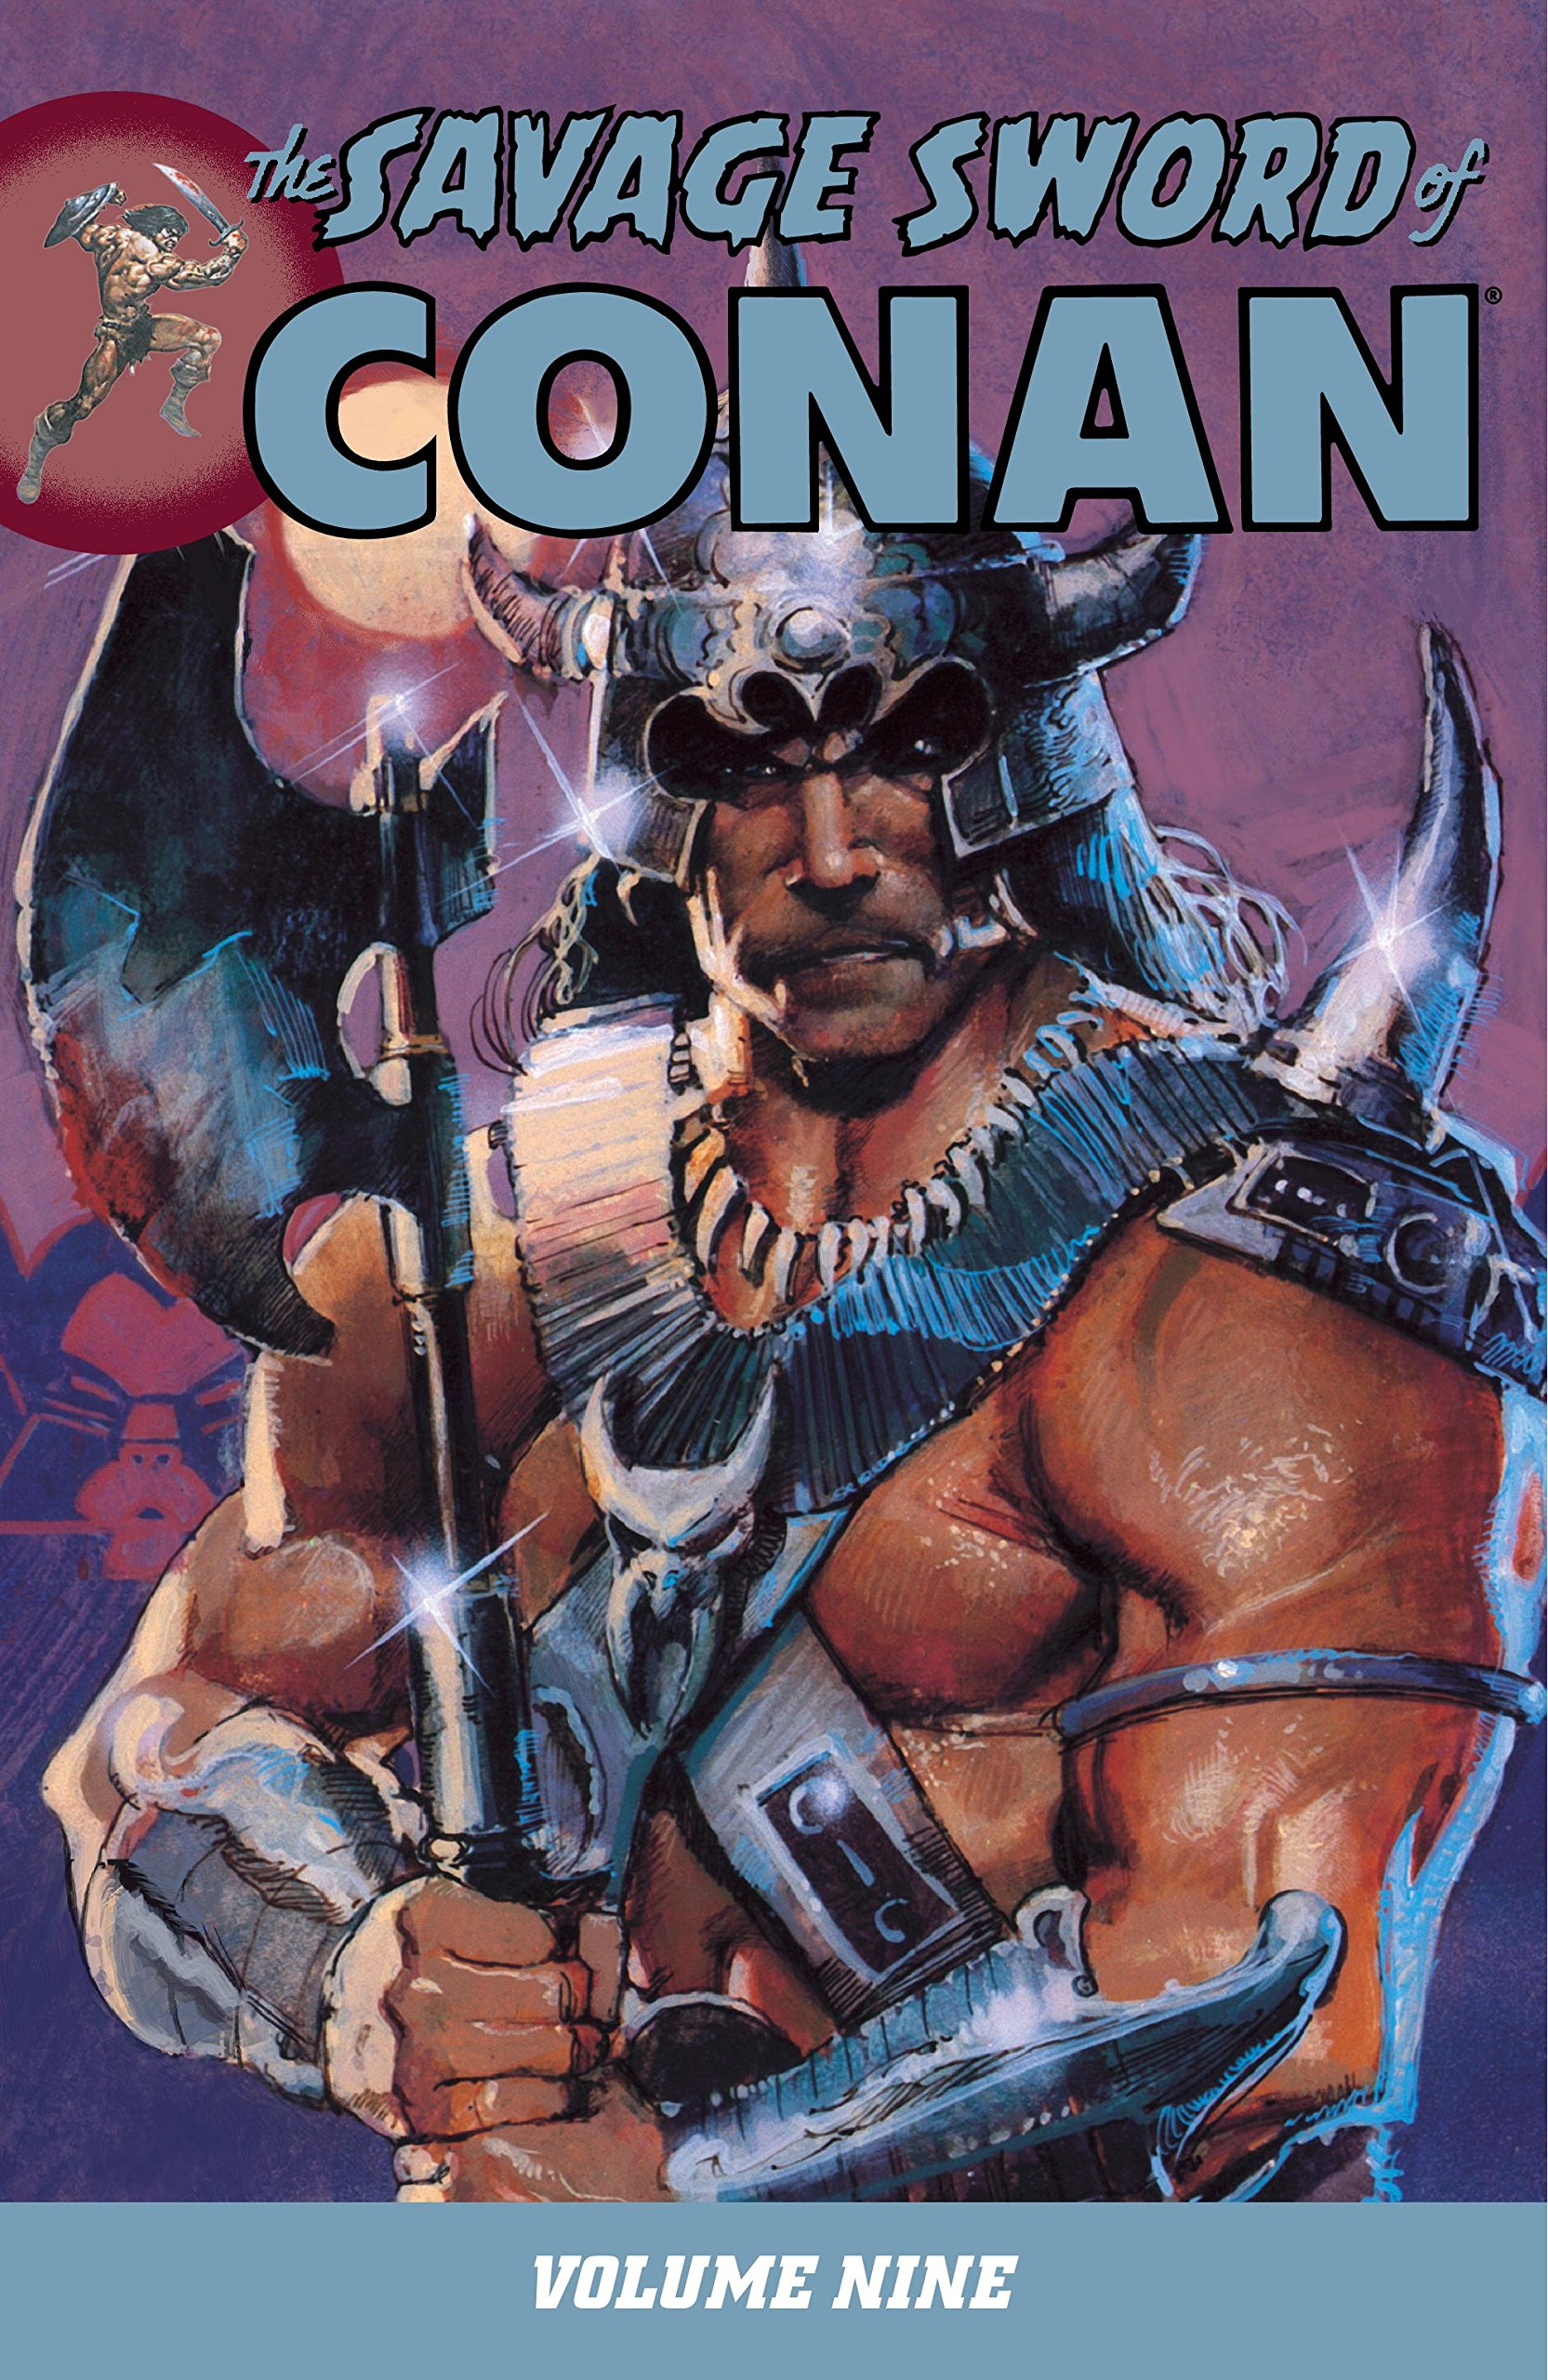 Download The Savage Sword of Conan Volume 9 ebook